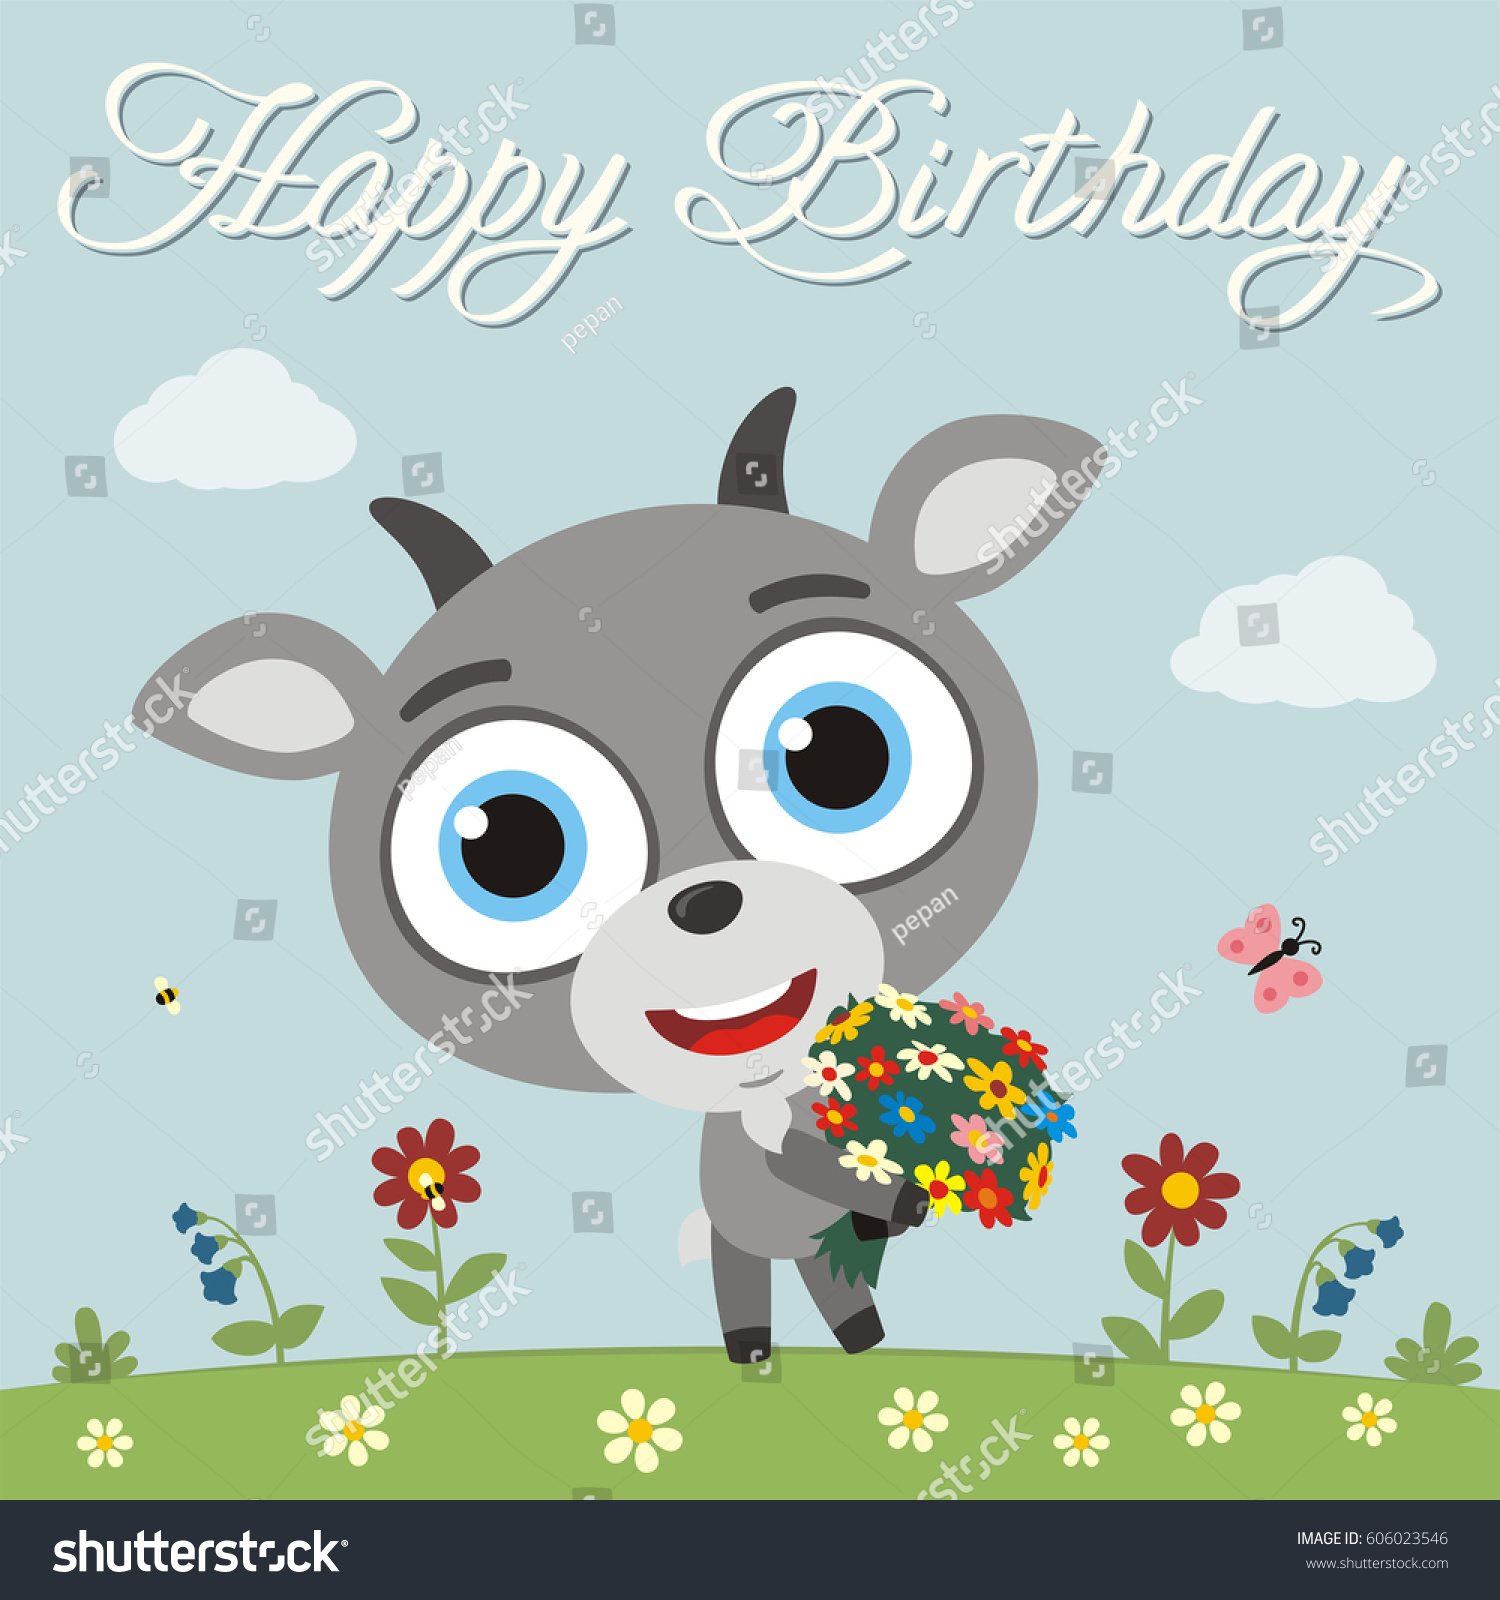 Happy birthday to you funny mouse with flowers greeting card ez happy birthday to you funny mouse with flowers greeting card ez canvas izmirmasajfo